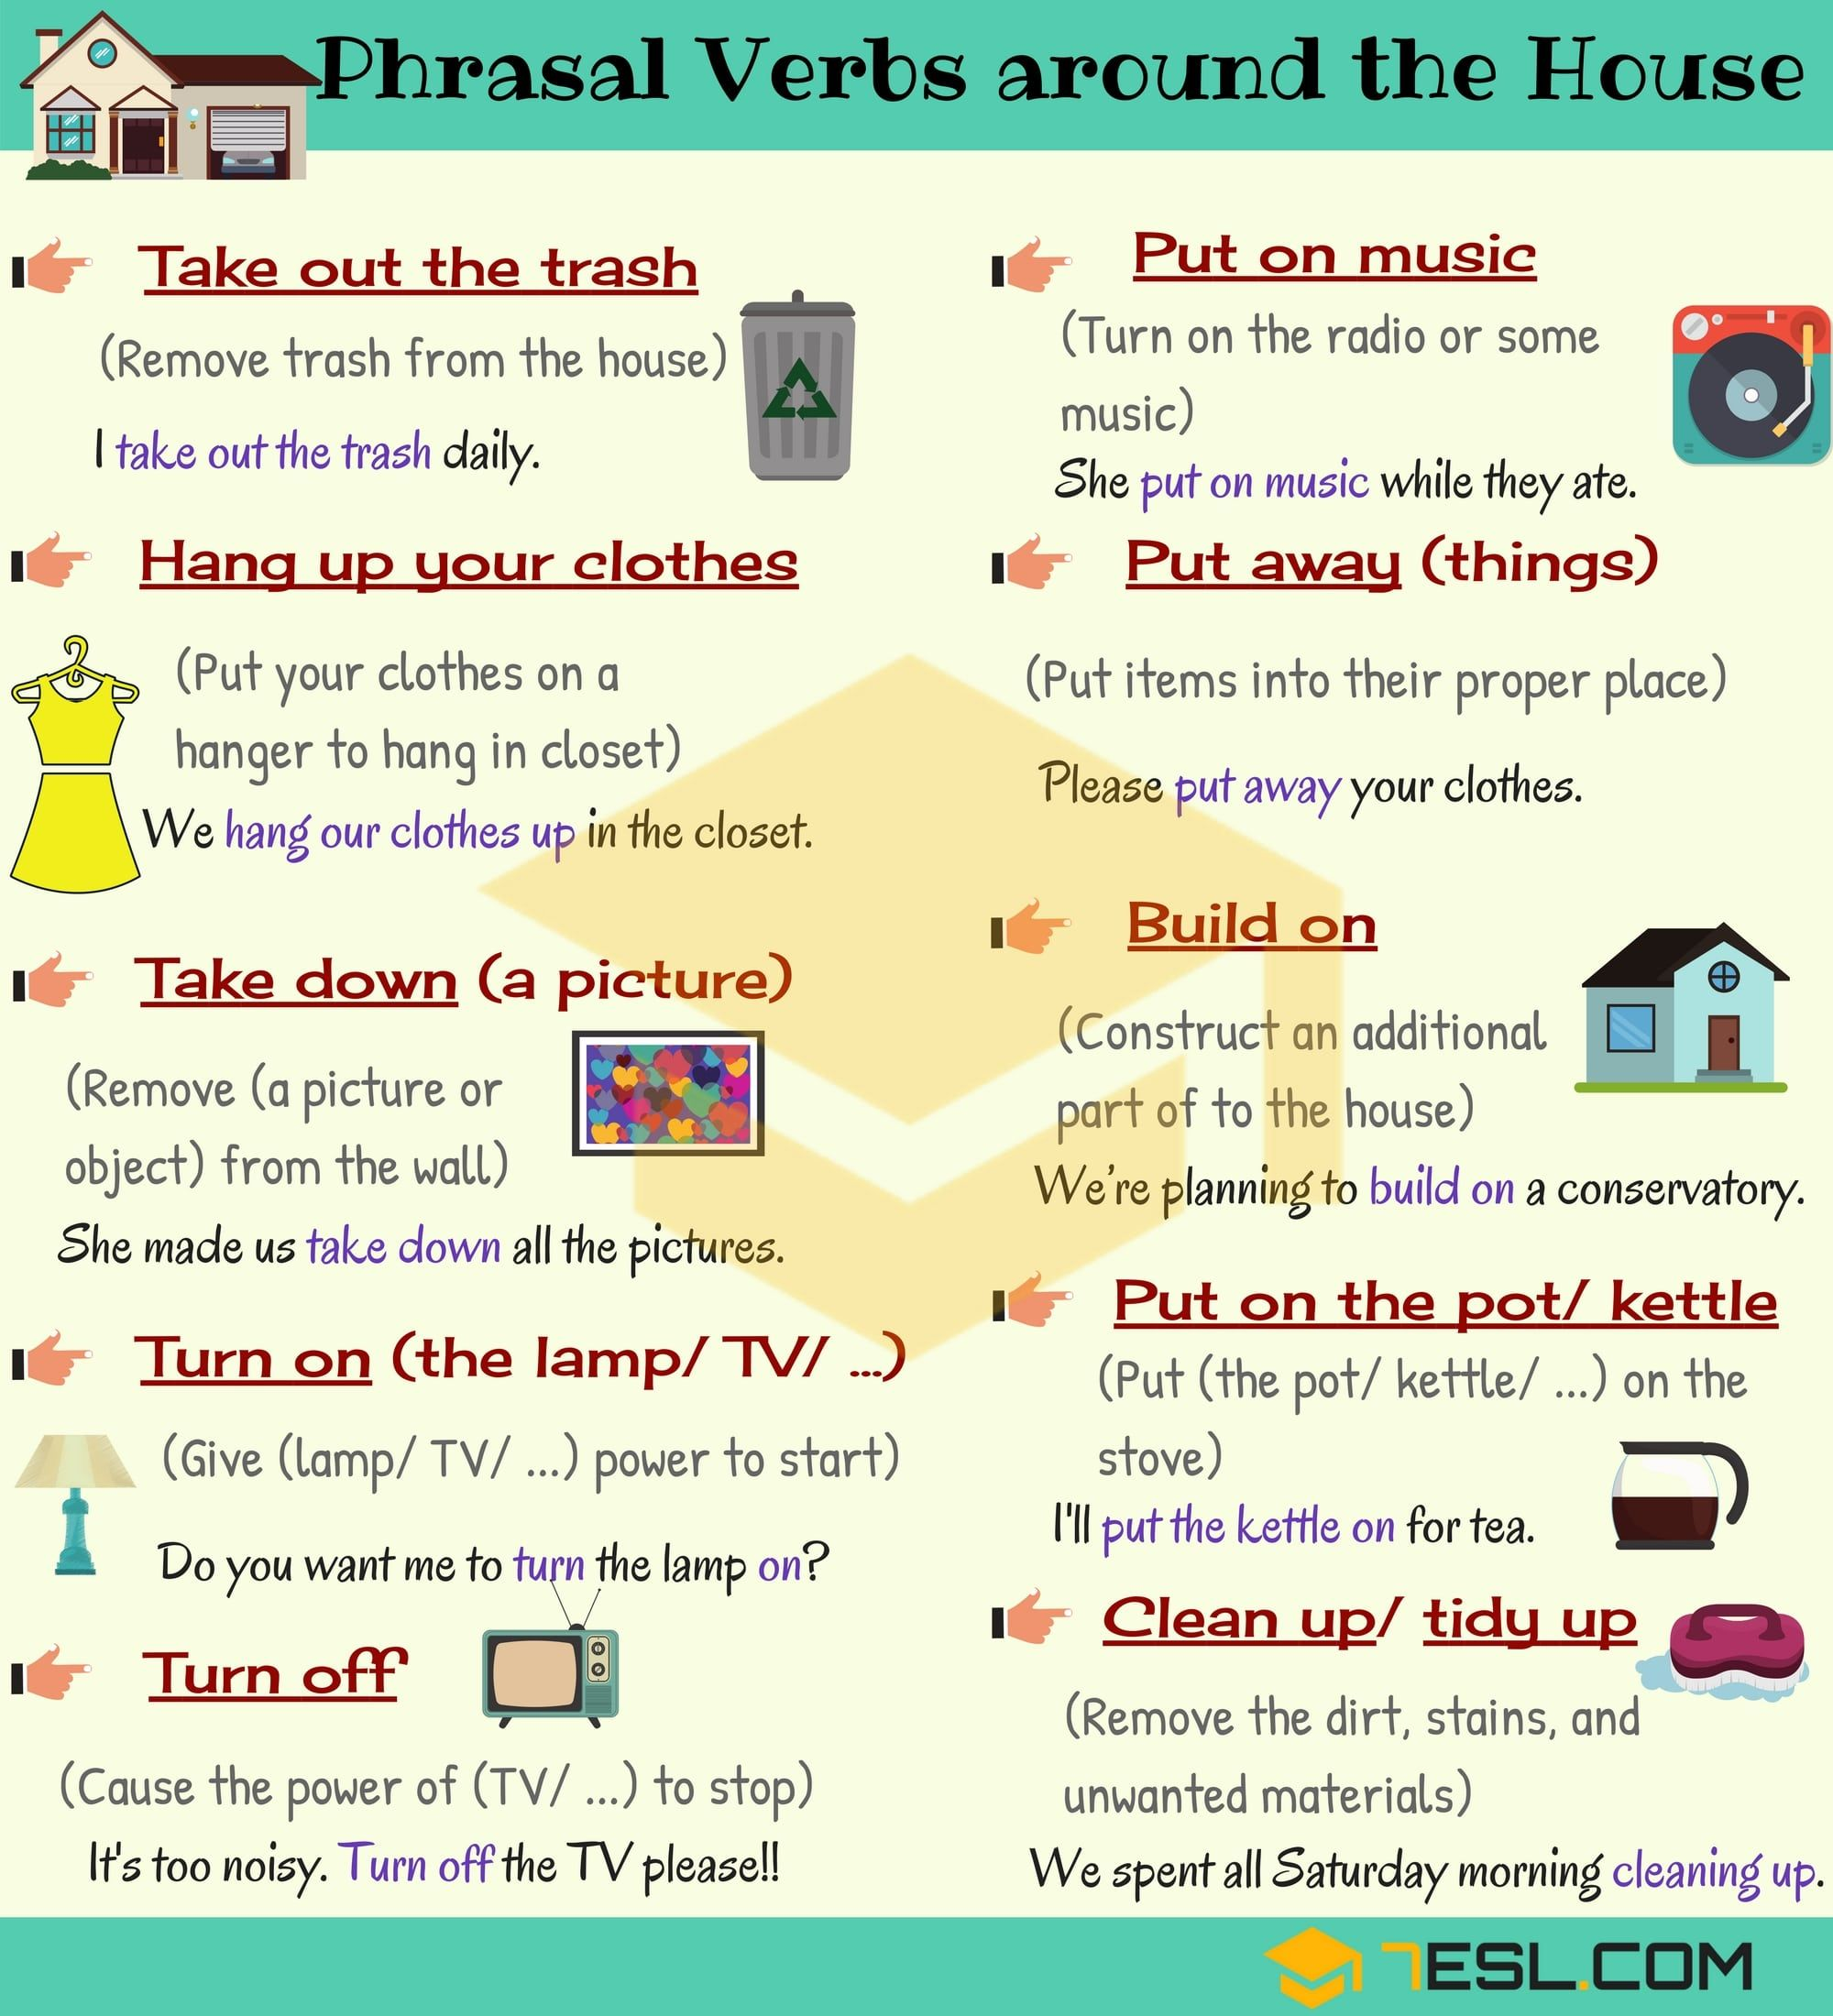 House Phrases 17 Useful Phrasal Verbs Around The House